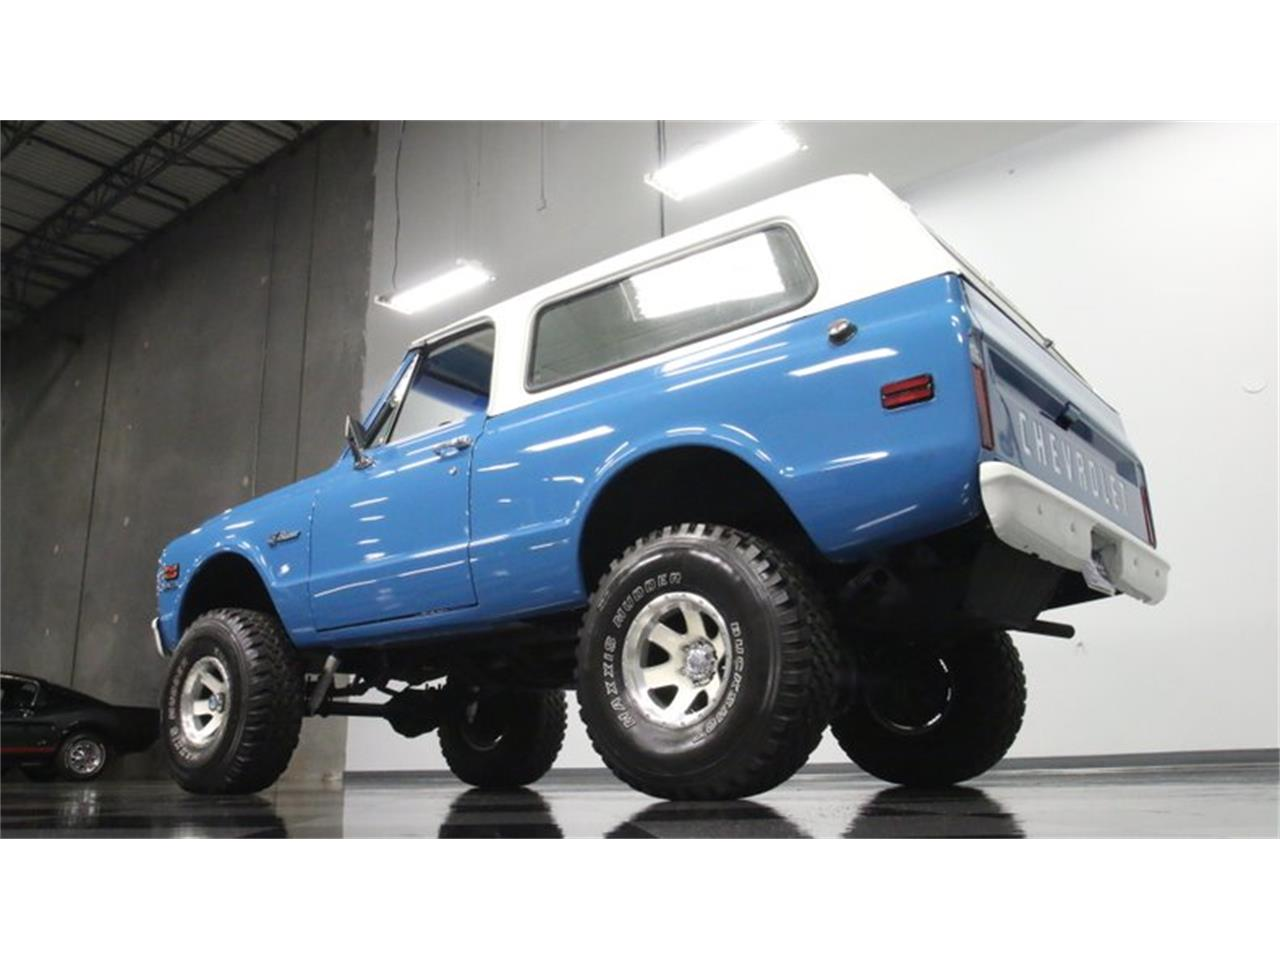 Large Picture of 1971 Chevrolet Blazer located in Lithia Springs Georgia Offered by Streetside Classics - Atlanta - PZLZ